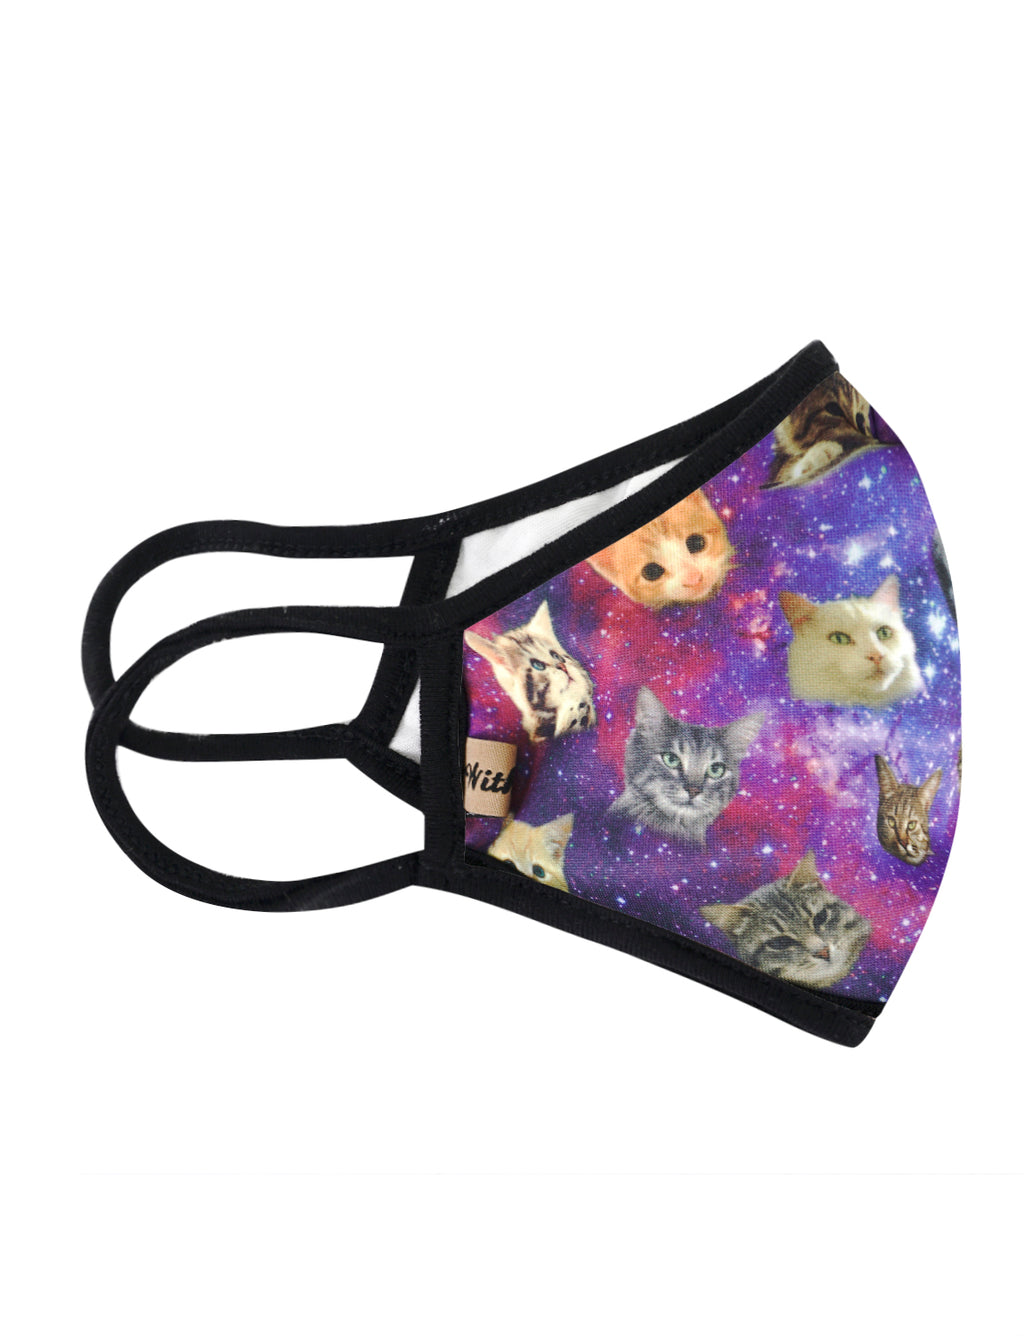 "urban x apparel, urban x clothing, urbanxapparel, urbanxclothing, wholesale, women clothing, bohemian, free people, free spirit, young contemporary, fashion trend, fashion style, fashion 2019,RETAIL, Multicolor ""Galaxy Cats"" Print Washable & Reusable Face Mask, URBAN X APPAREL"